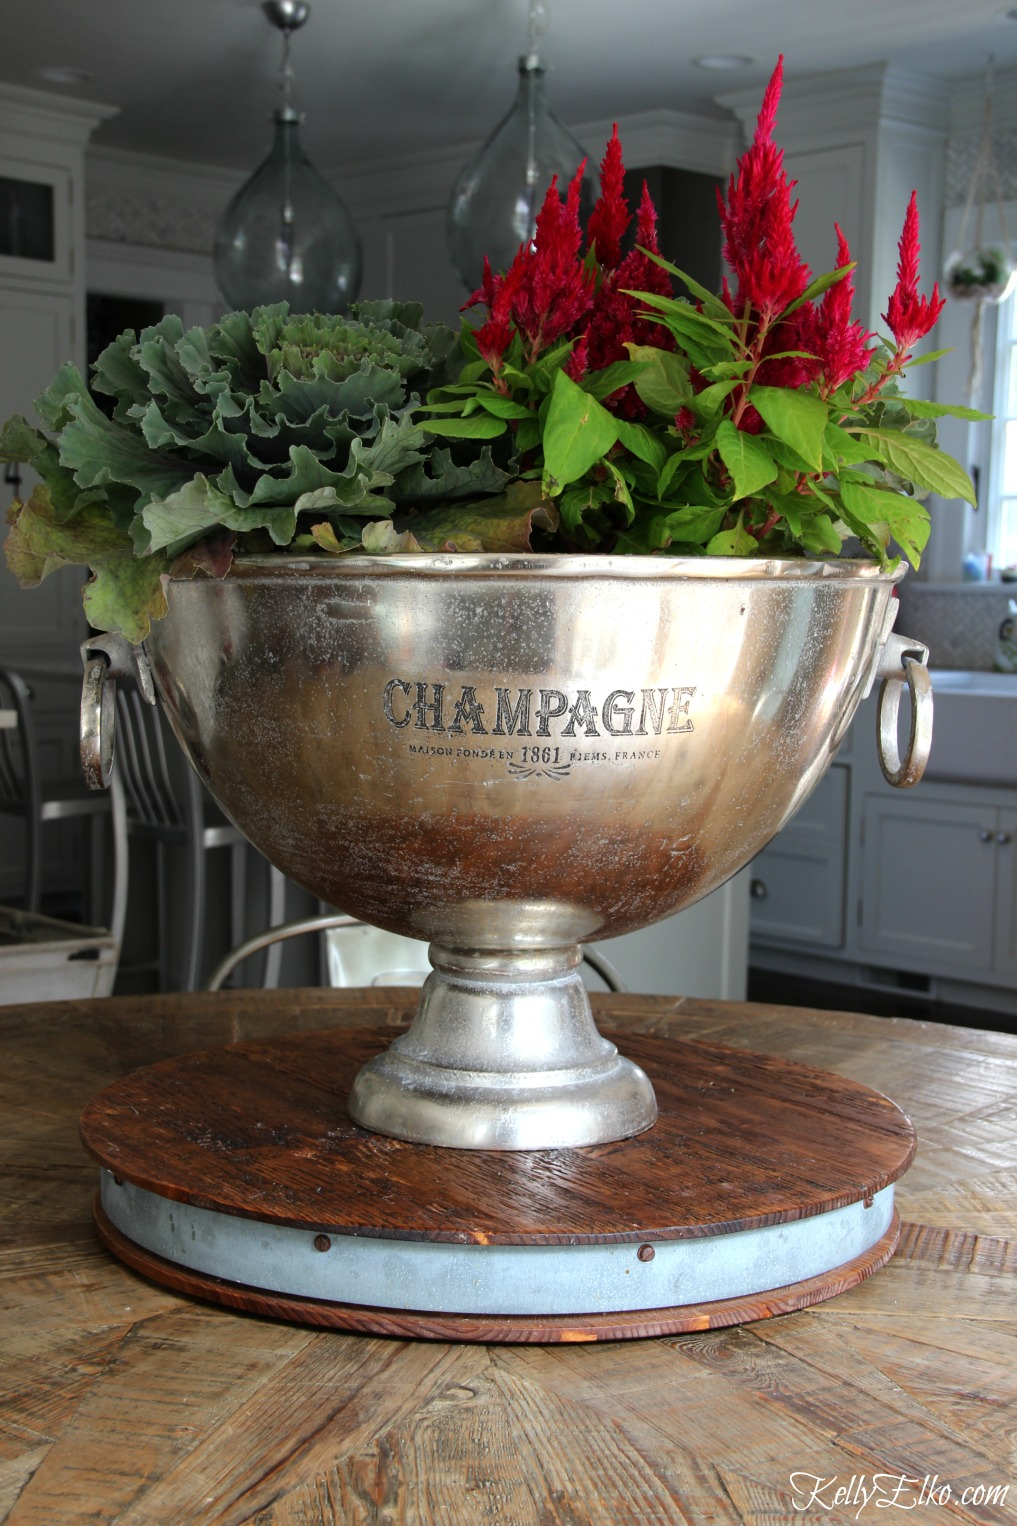 Get creative with your planters - this champagne bucket makes a fun fall planter kellyelko.com